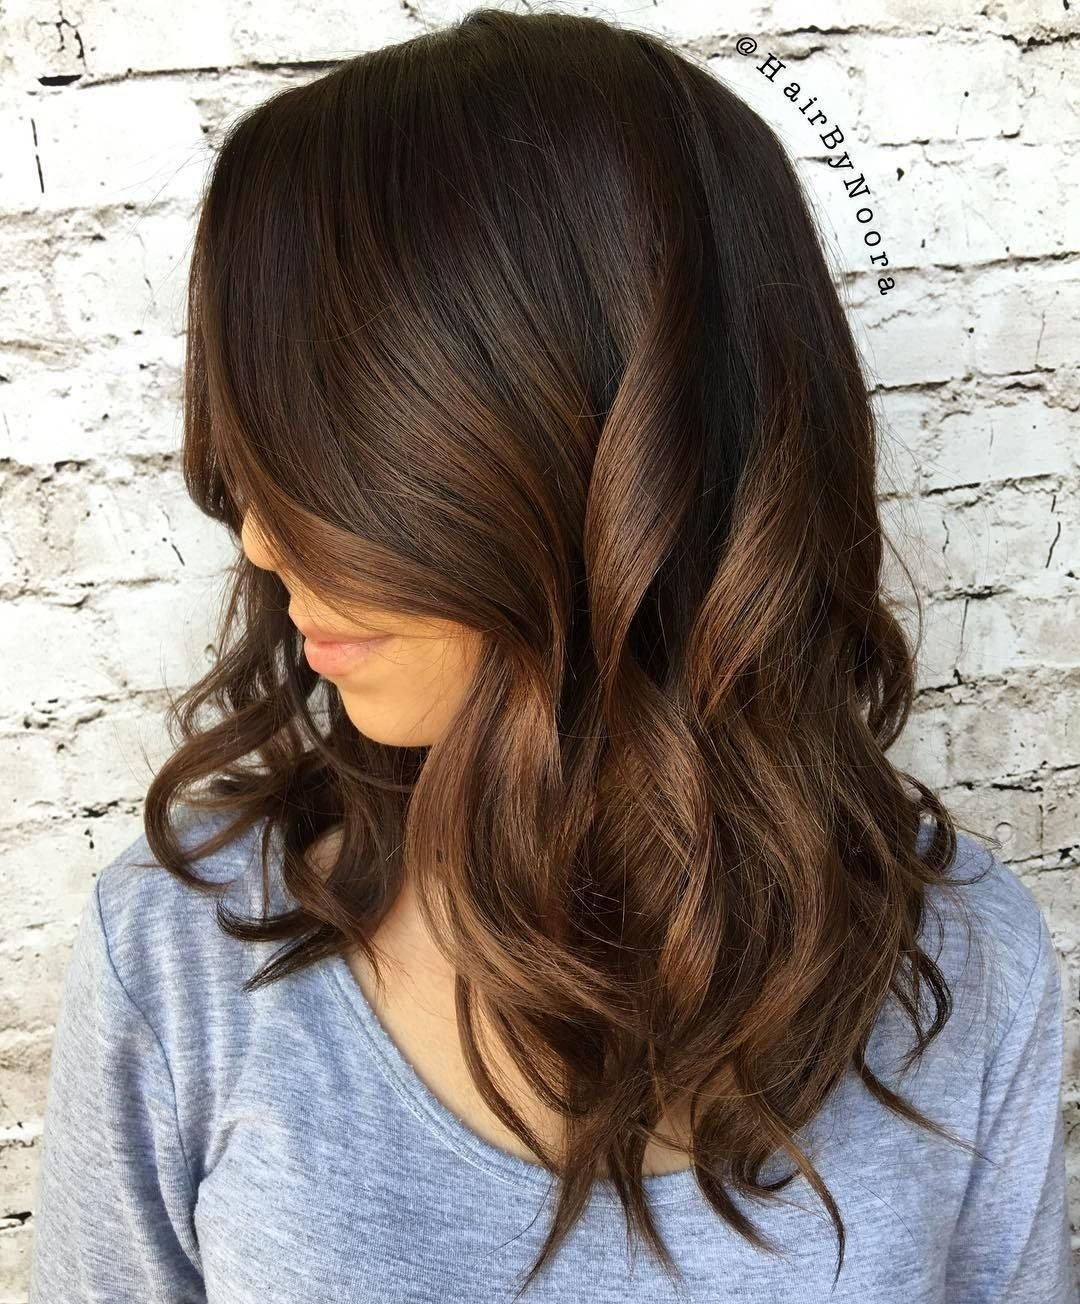 10 Fabulous Chocolate Brown Hair Color Ideas 60 chocolate brown hair color ideas for brunettes brunette ombre 1 2020